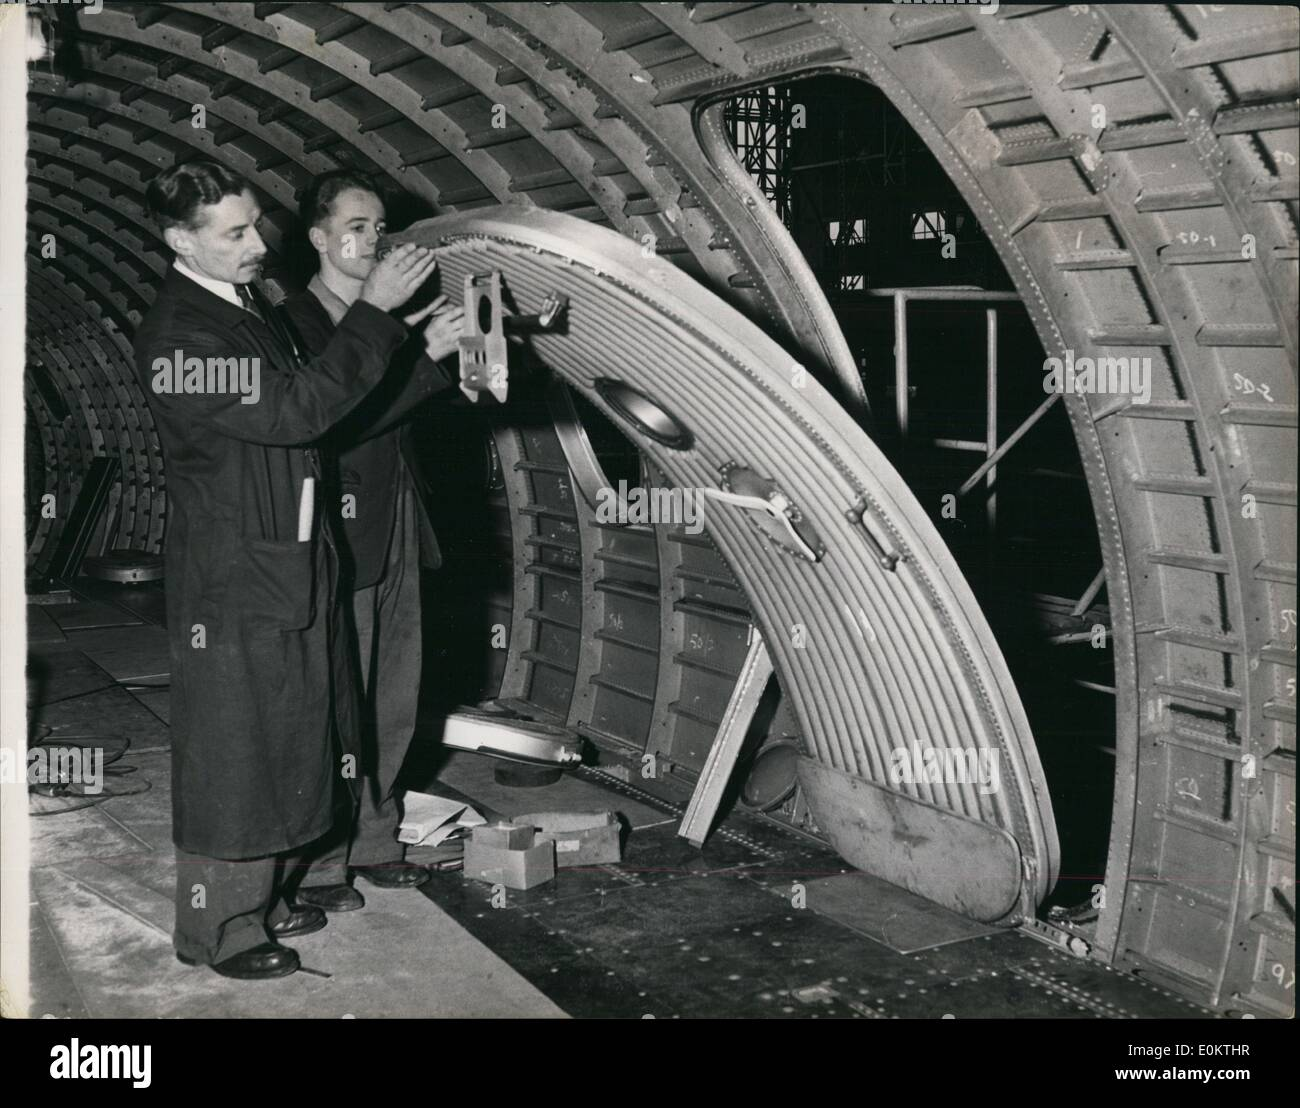 Jan 1, 1950 - Building the Britannia air liner: The huge fuselage has been built in seperate sections and is finally assembled in the Assembly hall at Bristol. This new method of assembly is in a way a form of pre - fabrication. Here a door is very light weight part plastic is being tried out before being assembled. (exact date unknown) - Stock Image